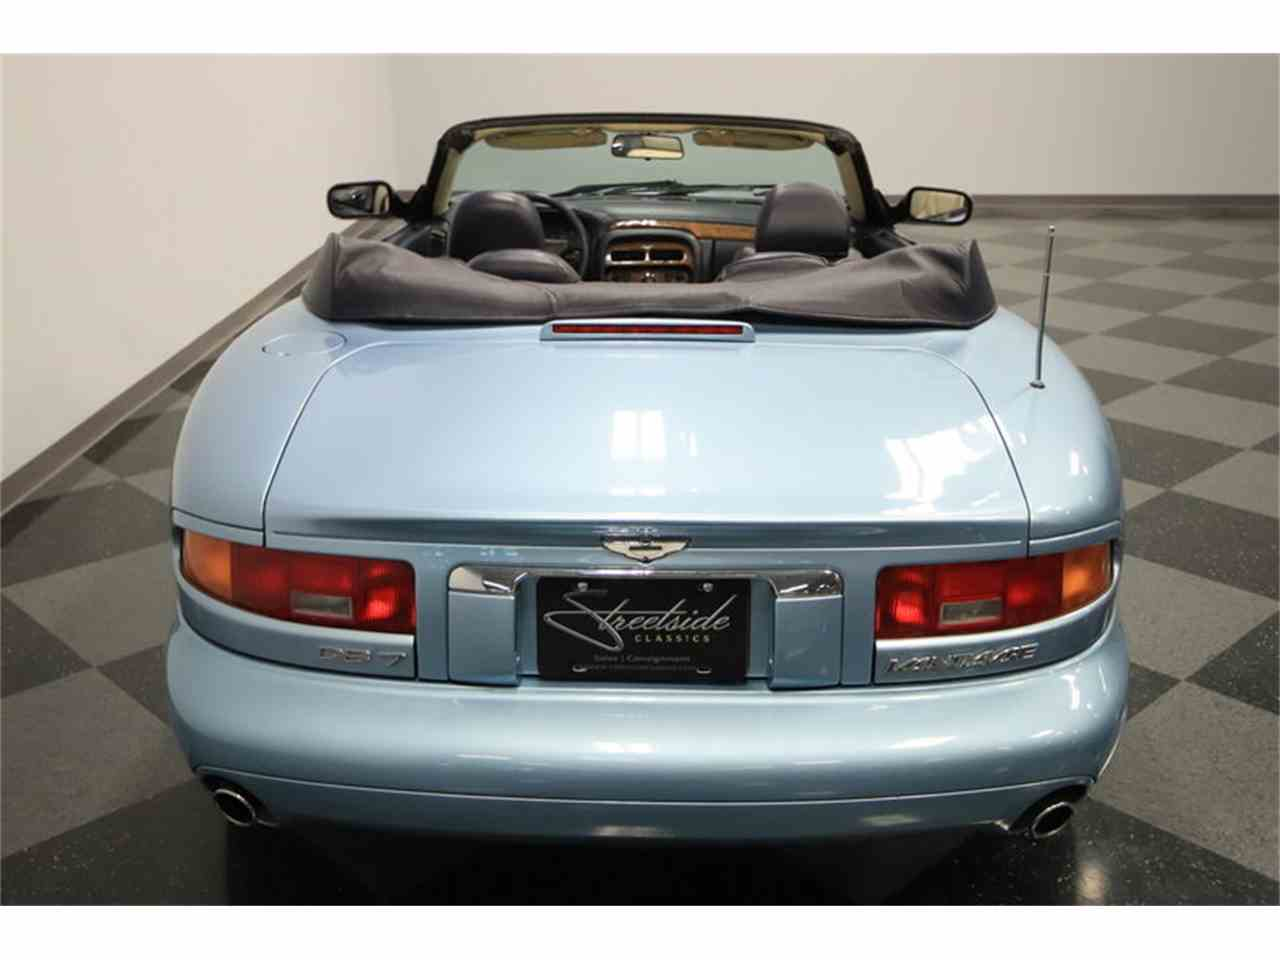 Large Picture of 2000 Aston Martin DB7 Vantage Volante located in Arizona Offered by Streetside Classics - Phoenix - M73B